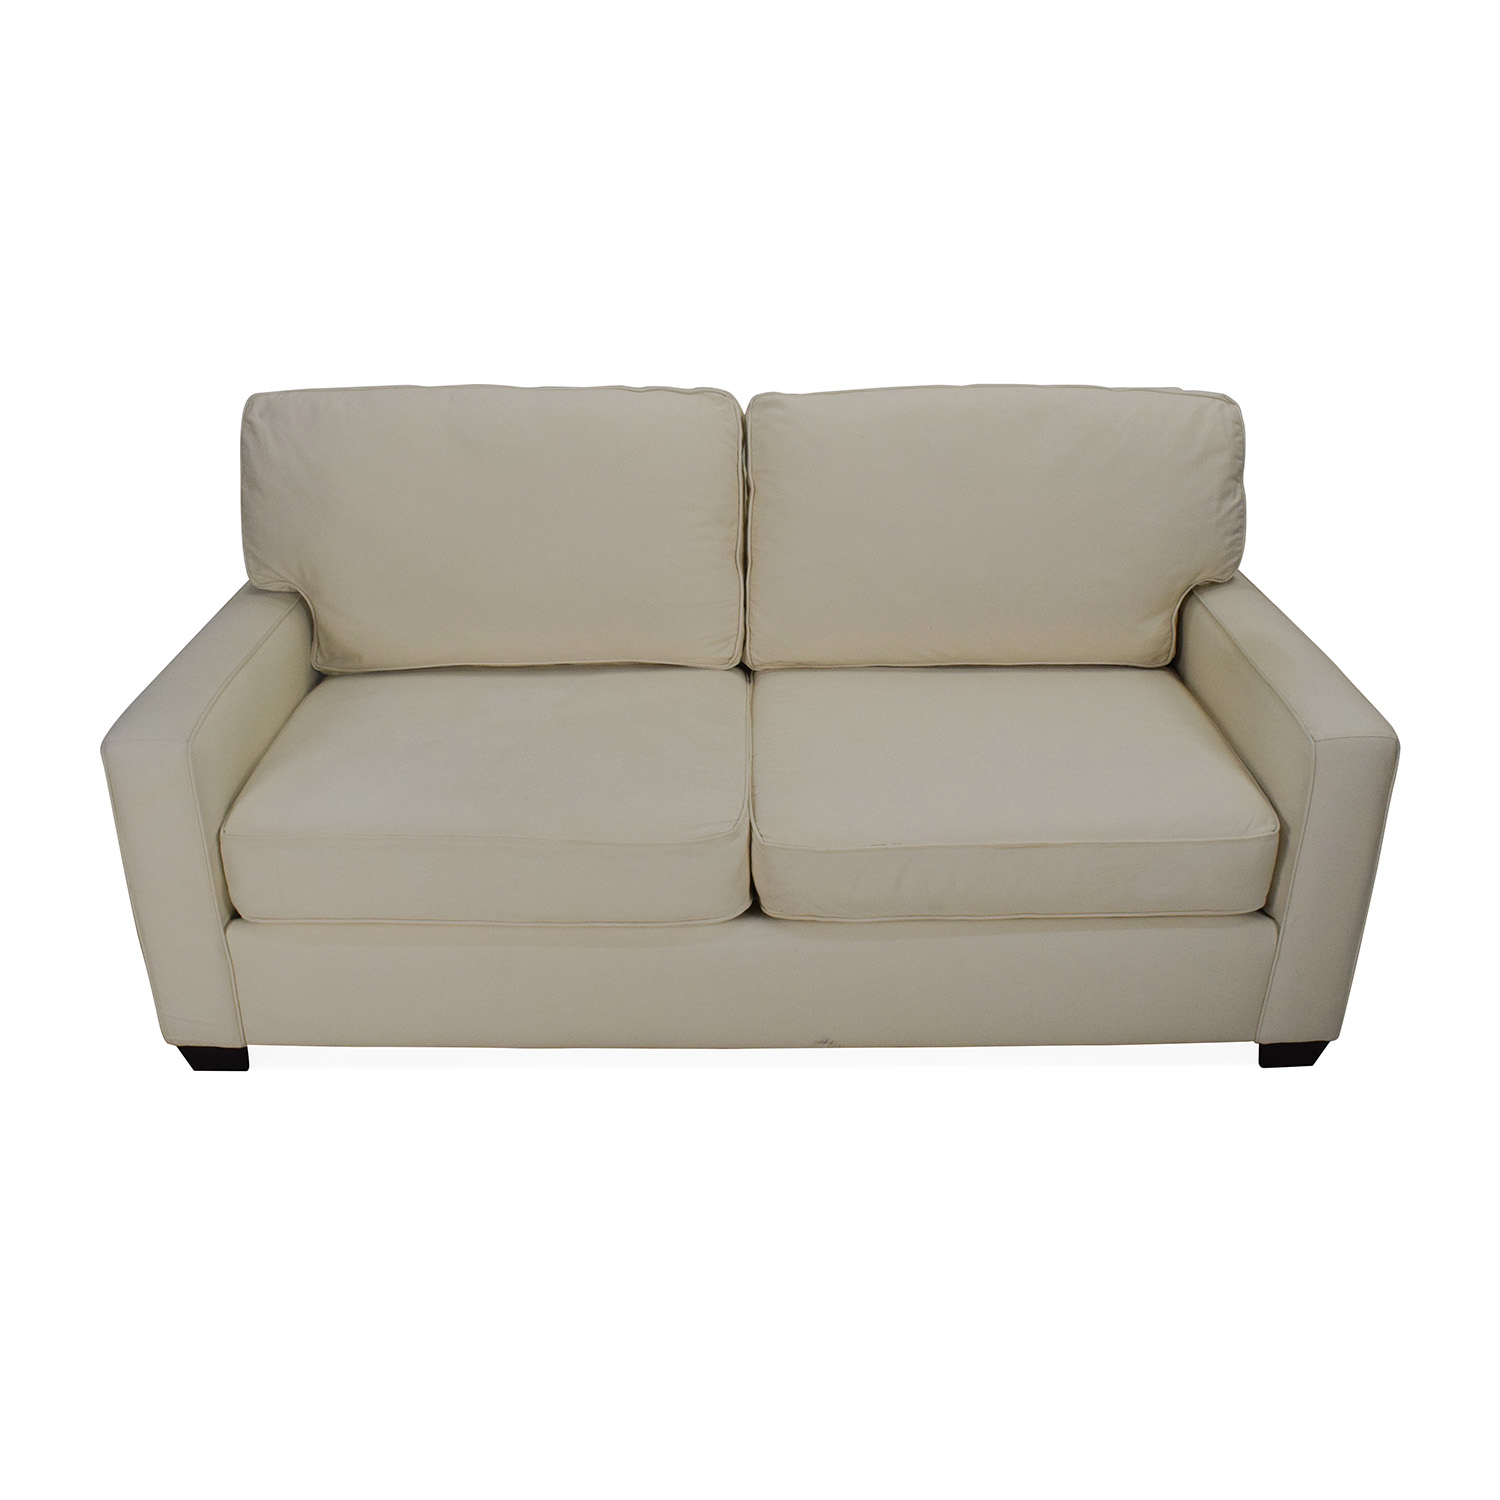 Buchanan sofa red barrel studio buchanan reclining sofa for Star furniture